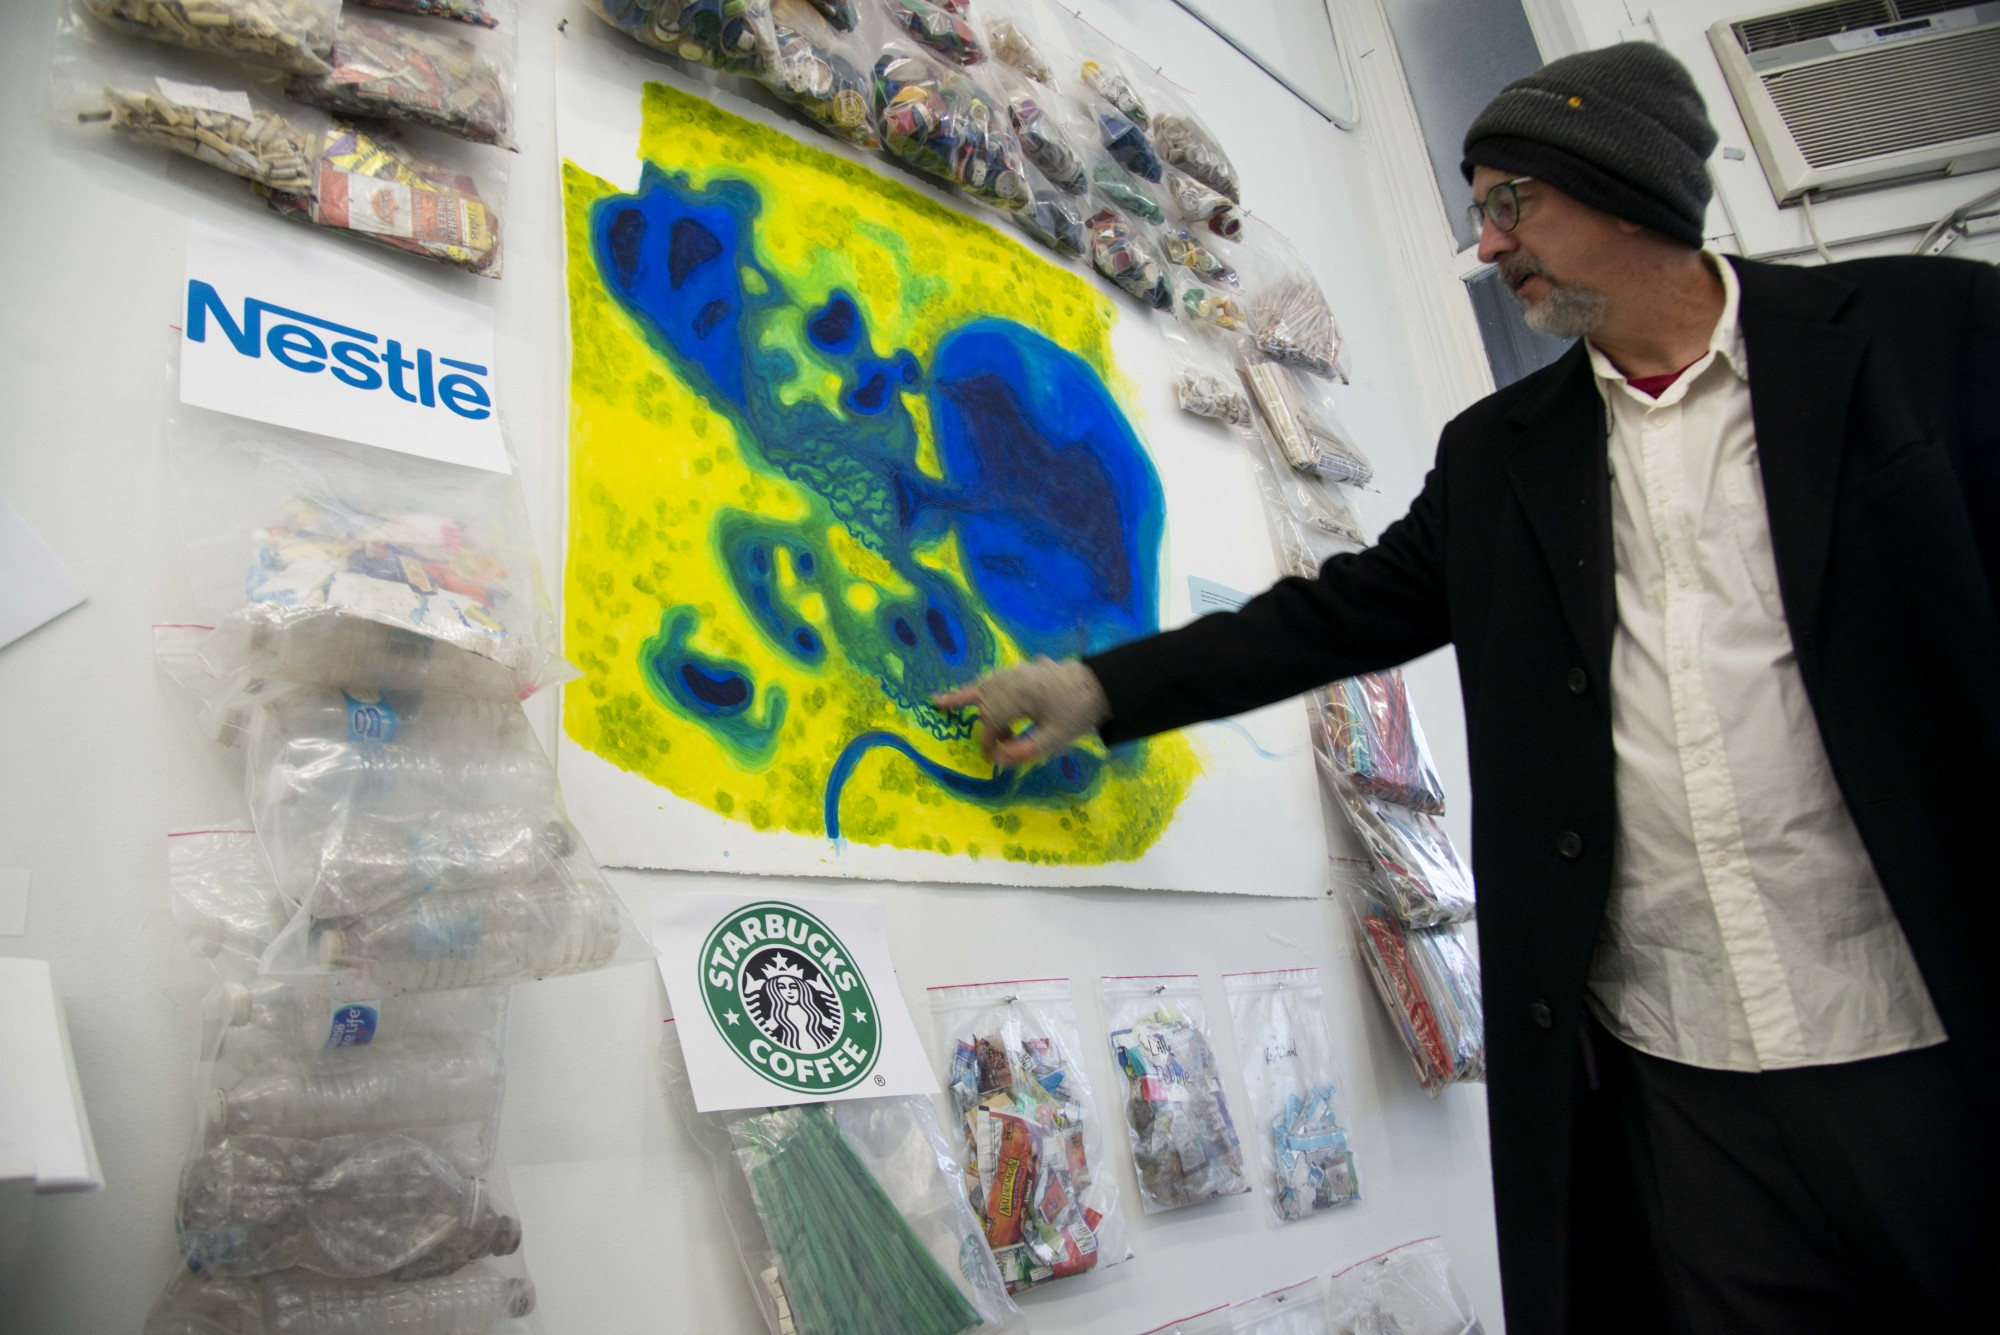 Sean Connaughty, a University art professor, explains his proposal for adding new rice fields around Lake Hiawatha to improve water quality at the White Page gallery in South Minneapolis on Friday, Nov. 19. The lake, formerly called Rice Lake, is critical habitat for wildlife and has been deeply impaired by storm water pollution from South Minneapolis.